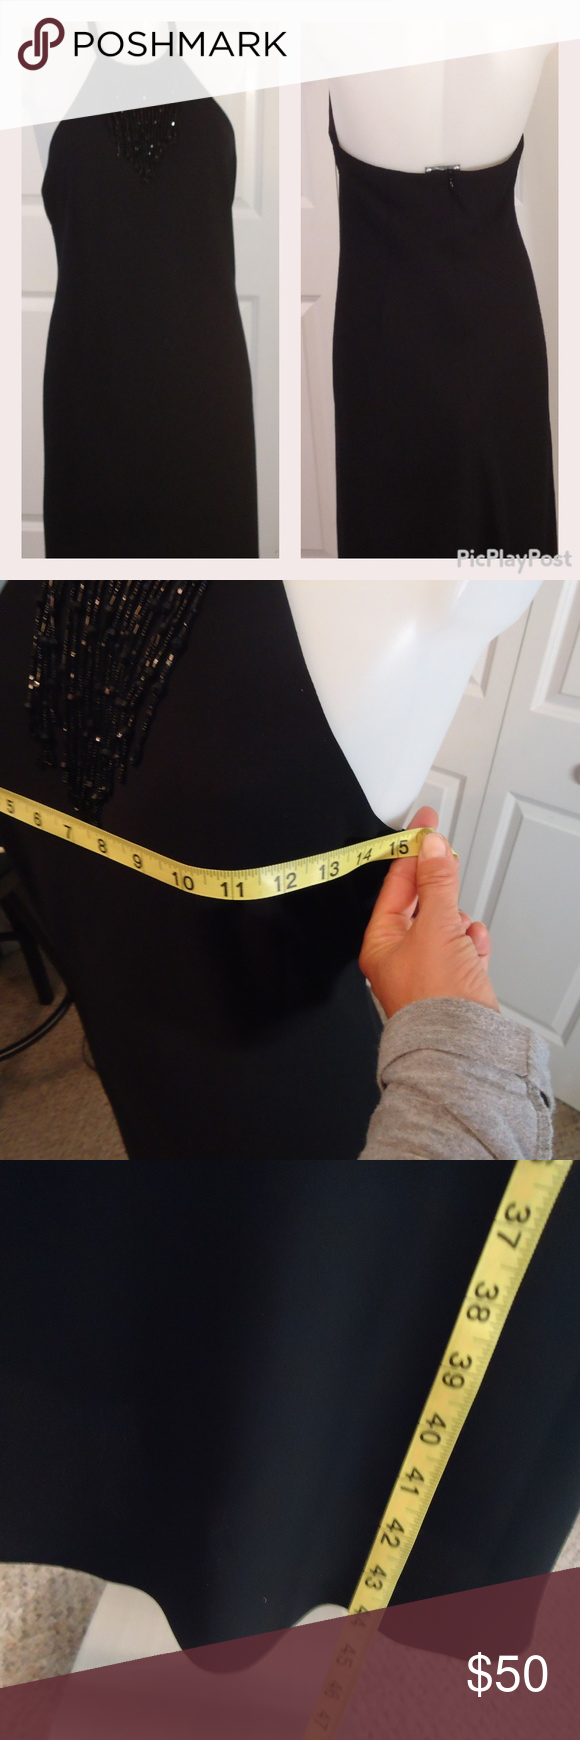 EVAN PICONE DRESS All black open back halter neck beaded collar designer cocktail dress by EVAN PICONE Excellent condition..this has.no stretch! Hidden zipper down the back. Fabulous little black fancy cocktail dress. Excellent quality Ask if you need any measurements. Evan Picone Dresses Backless #backlesscocktaildress